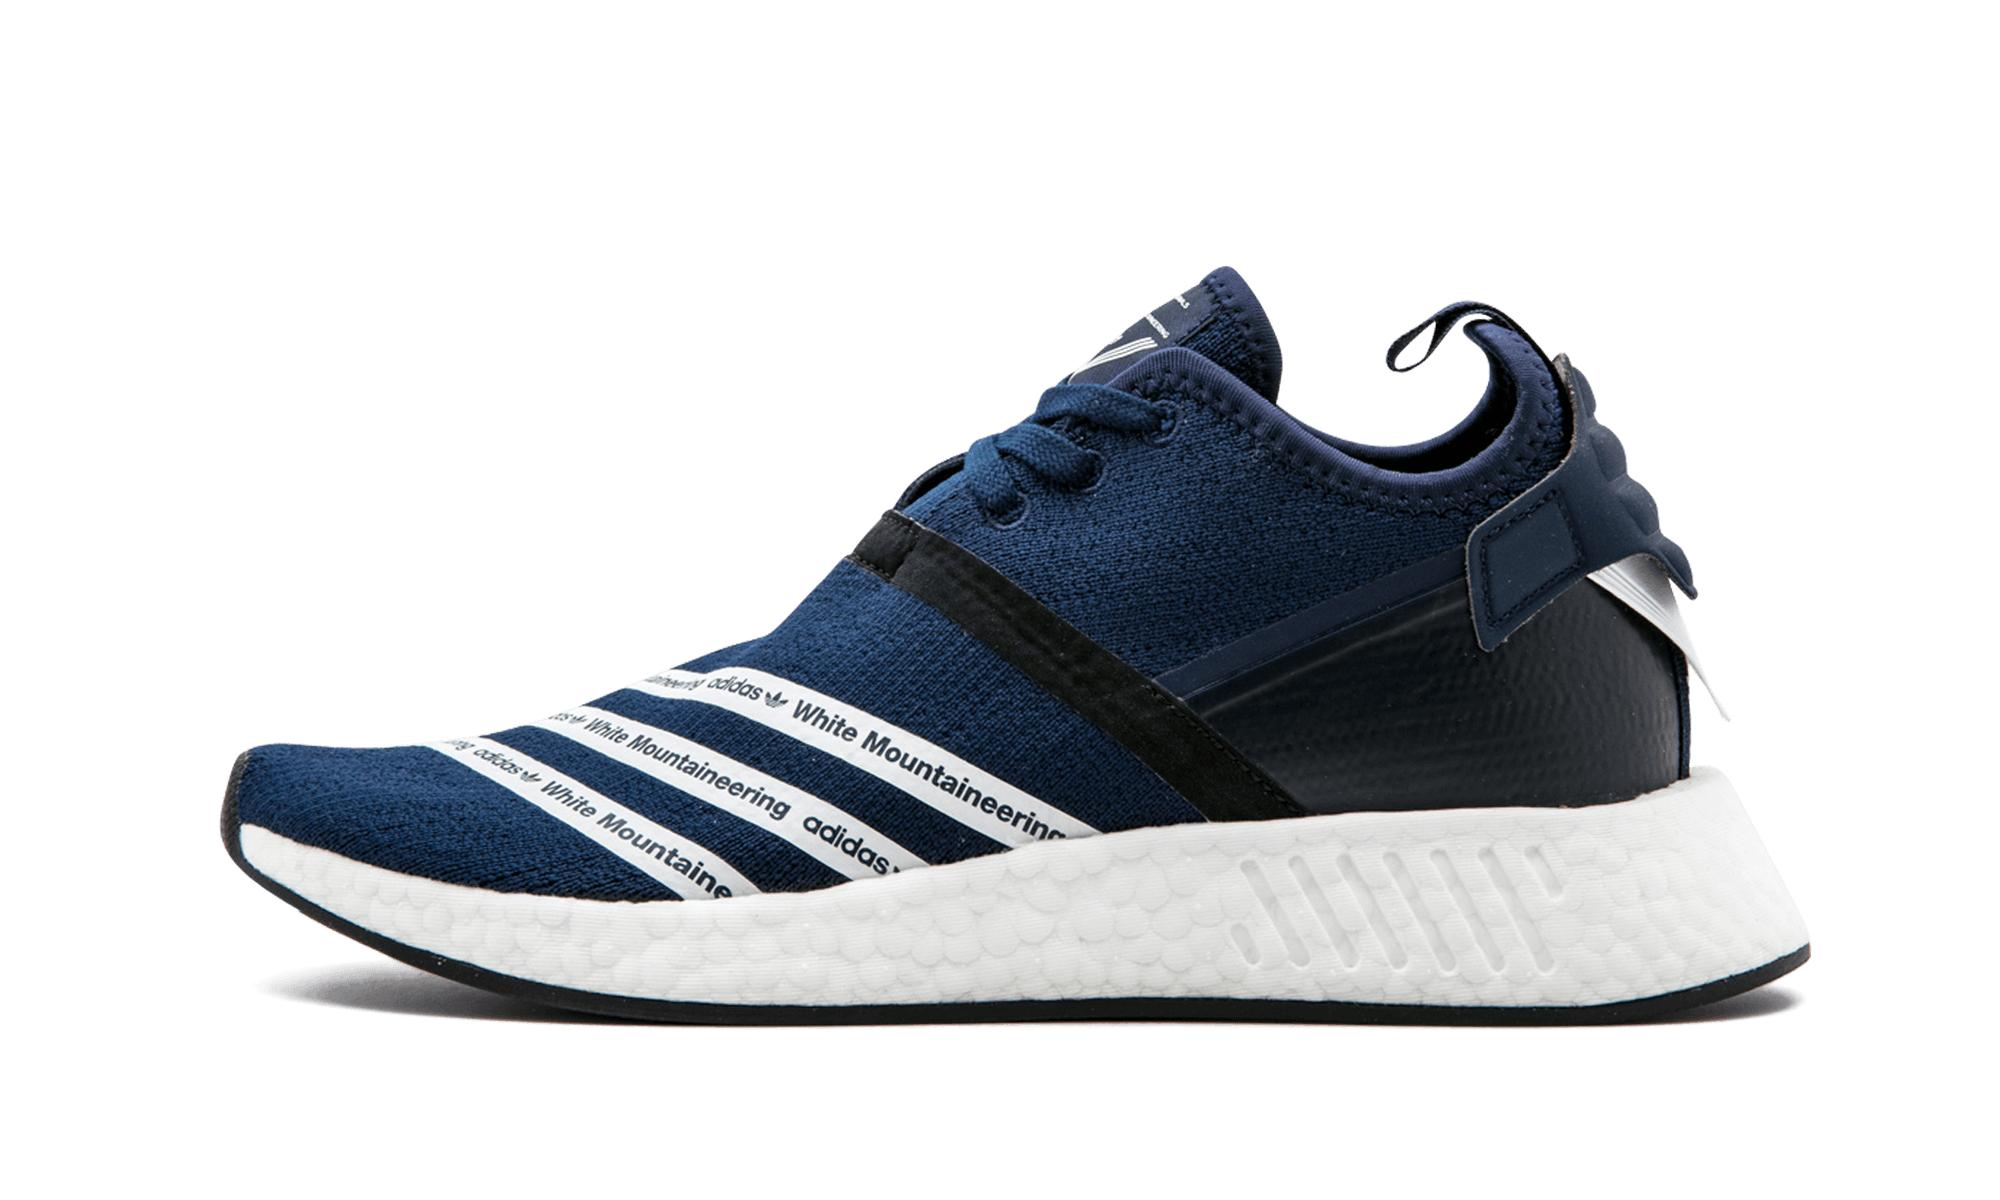 ea875c605 adidas Wm Nmd R2 Pk in Blue for Men - Save 19% - Lyst